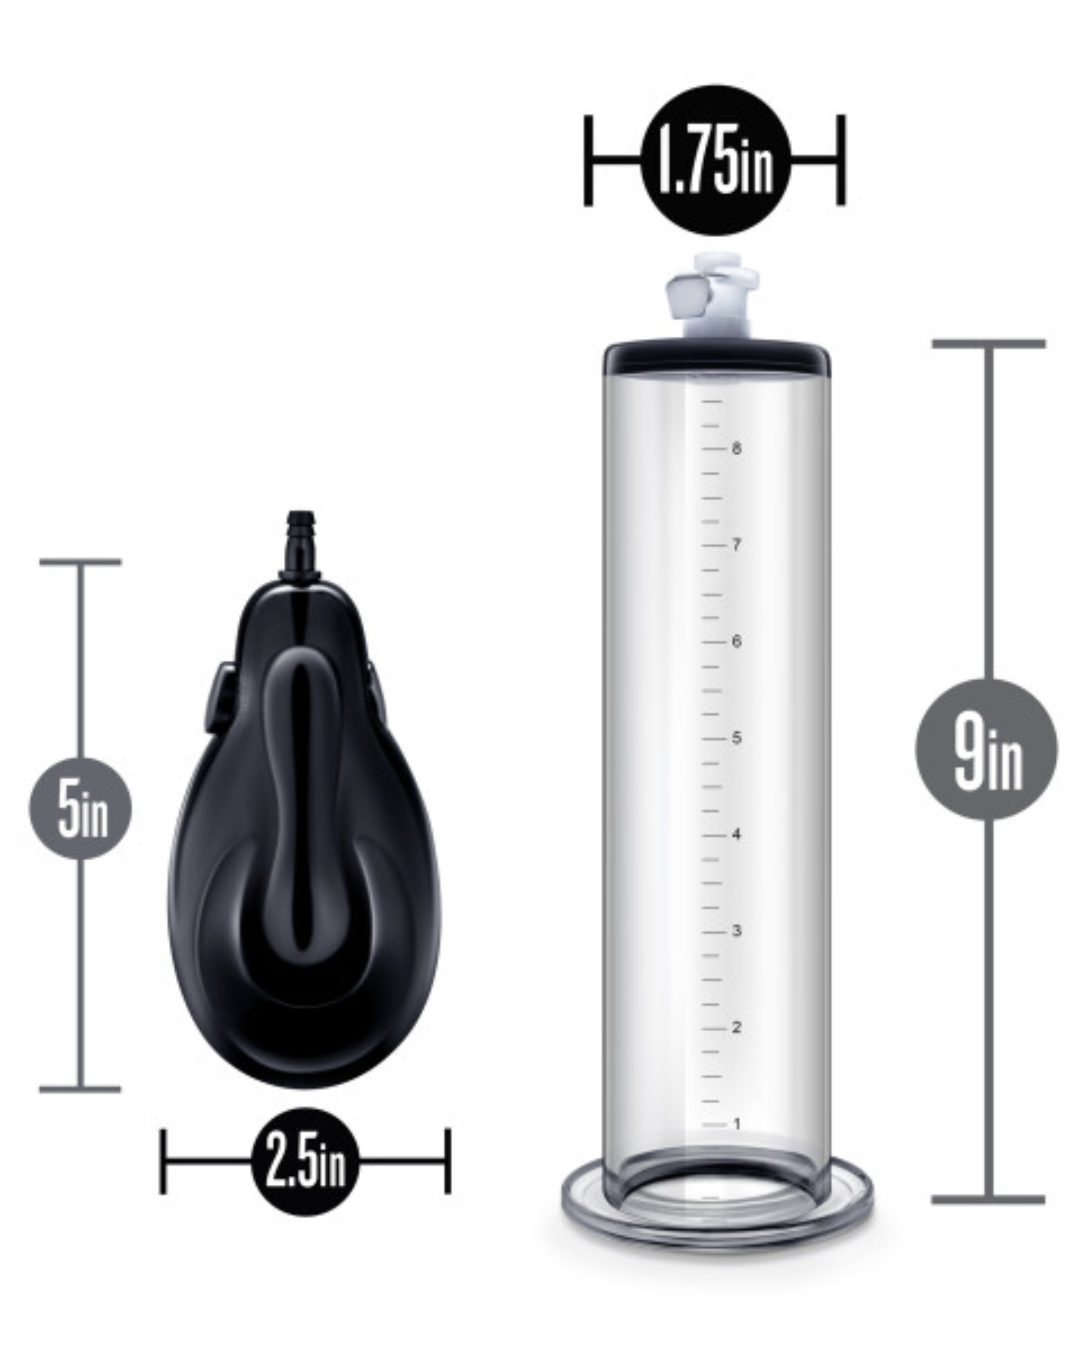 Performance Vx9 Automatic Penis Pump by Blush - Clear